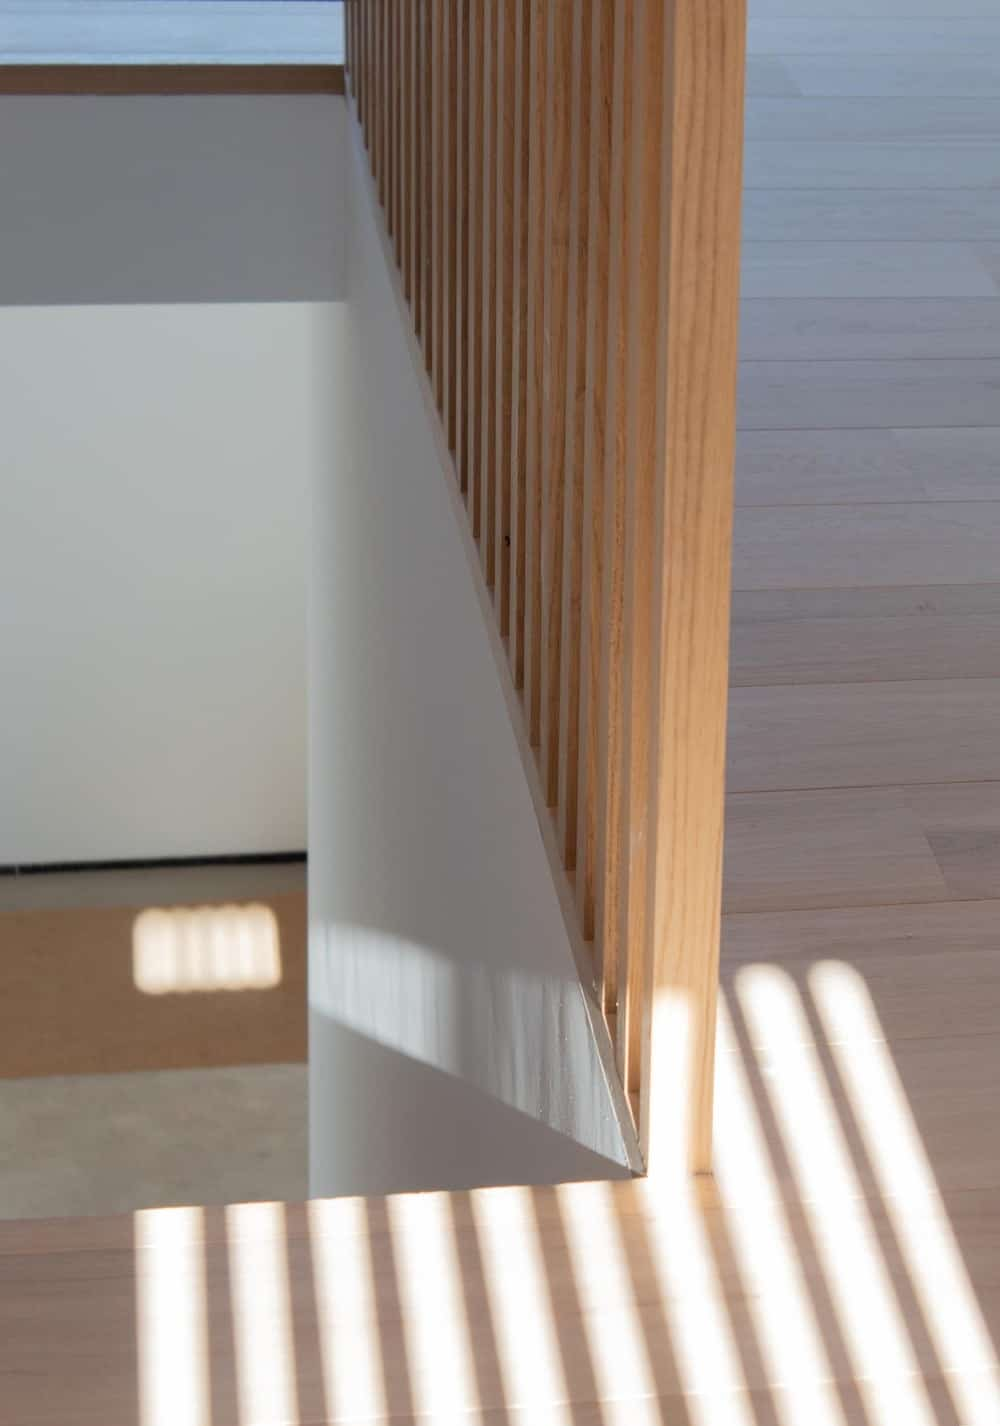 This is a close look at the wooden railing and wall of the staircase that matches with the hardwood flooring.